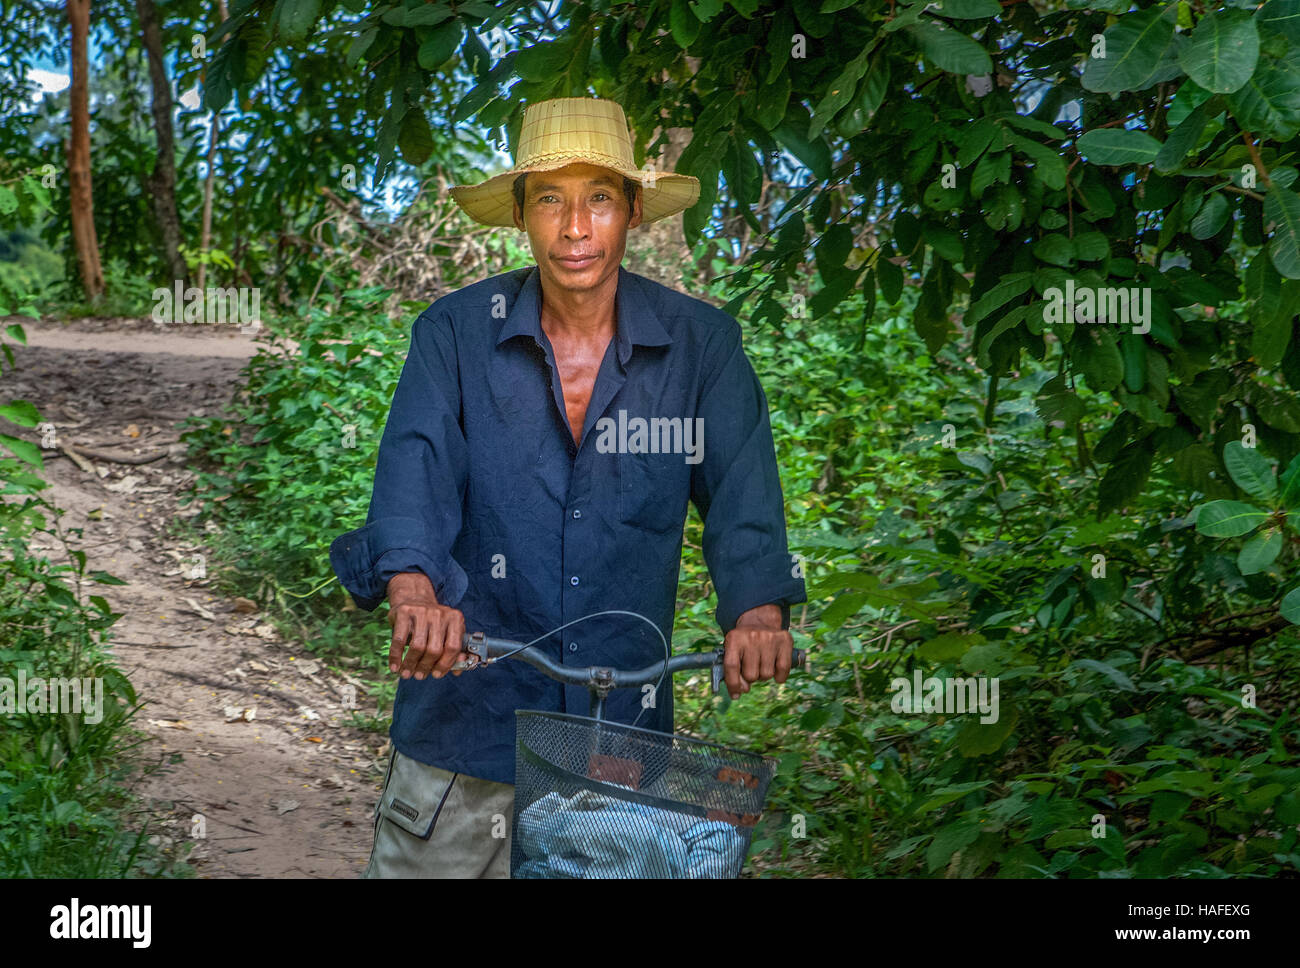 Portrait of a Cambodian Khmer rice farming man riding home on his bicycle in Banteay Srei, Kingdom of Cambodia. - Stock Image